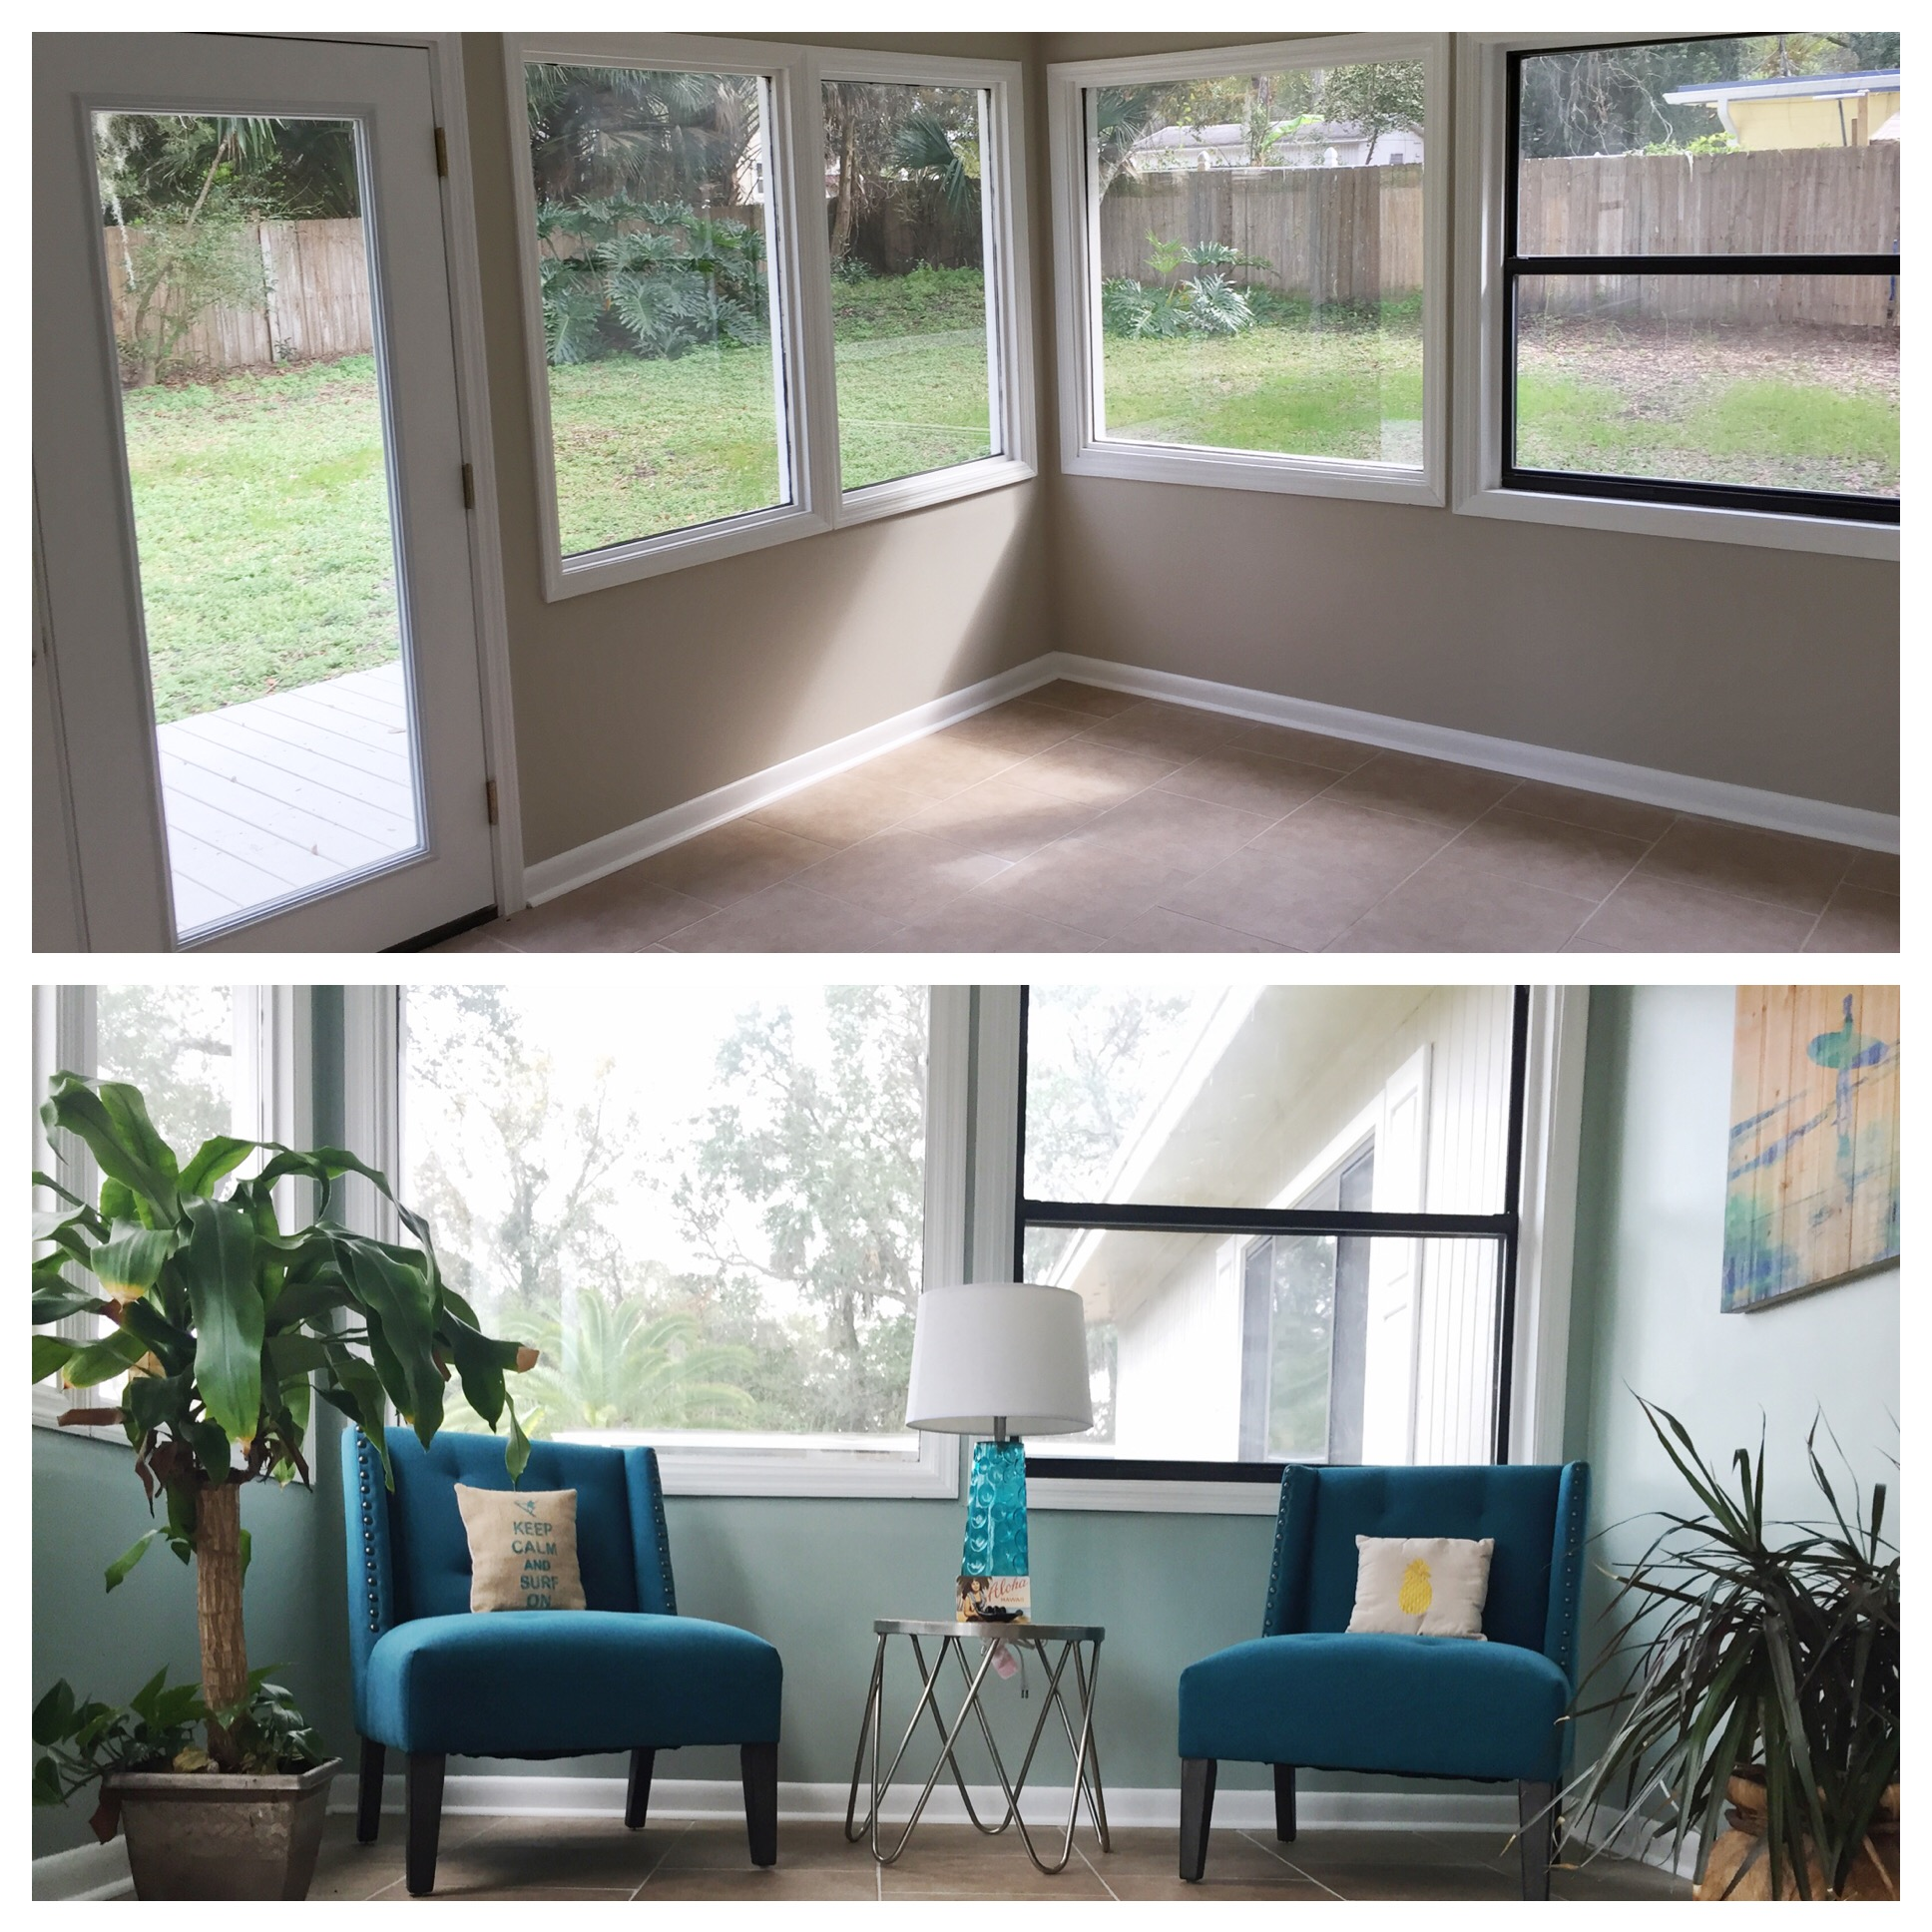 Before & After Vacant Staging